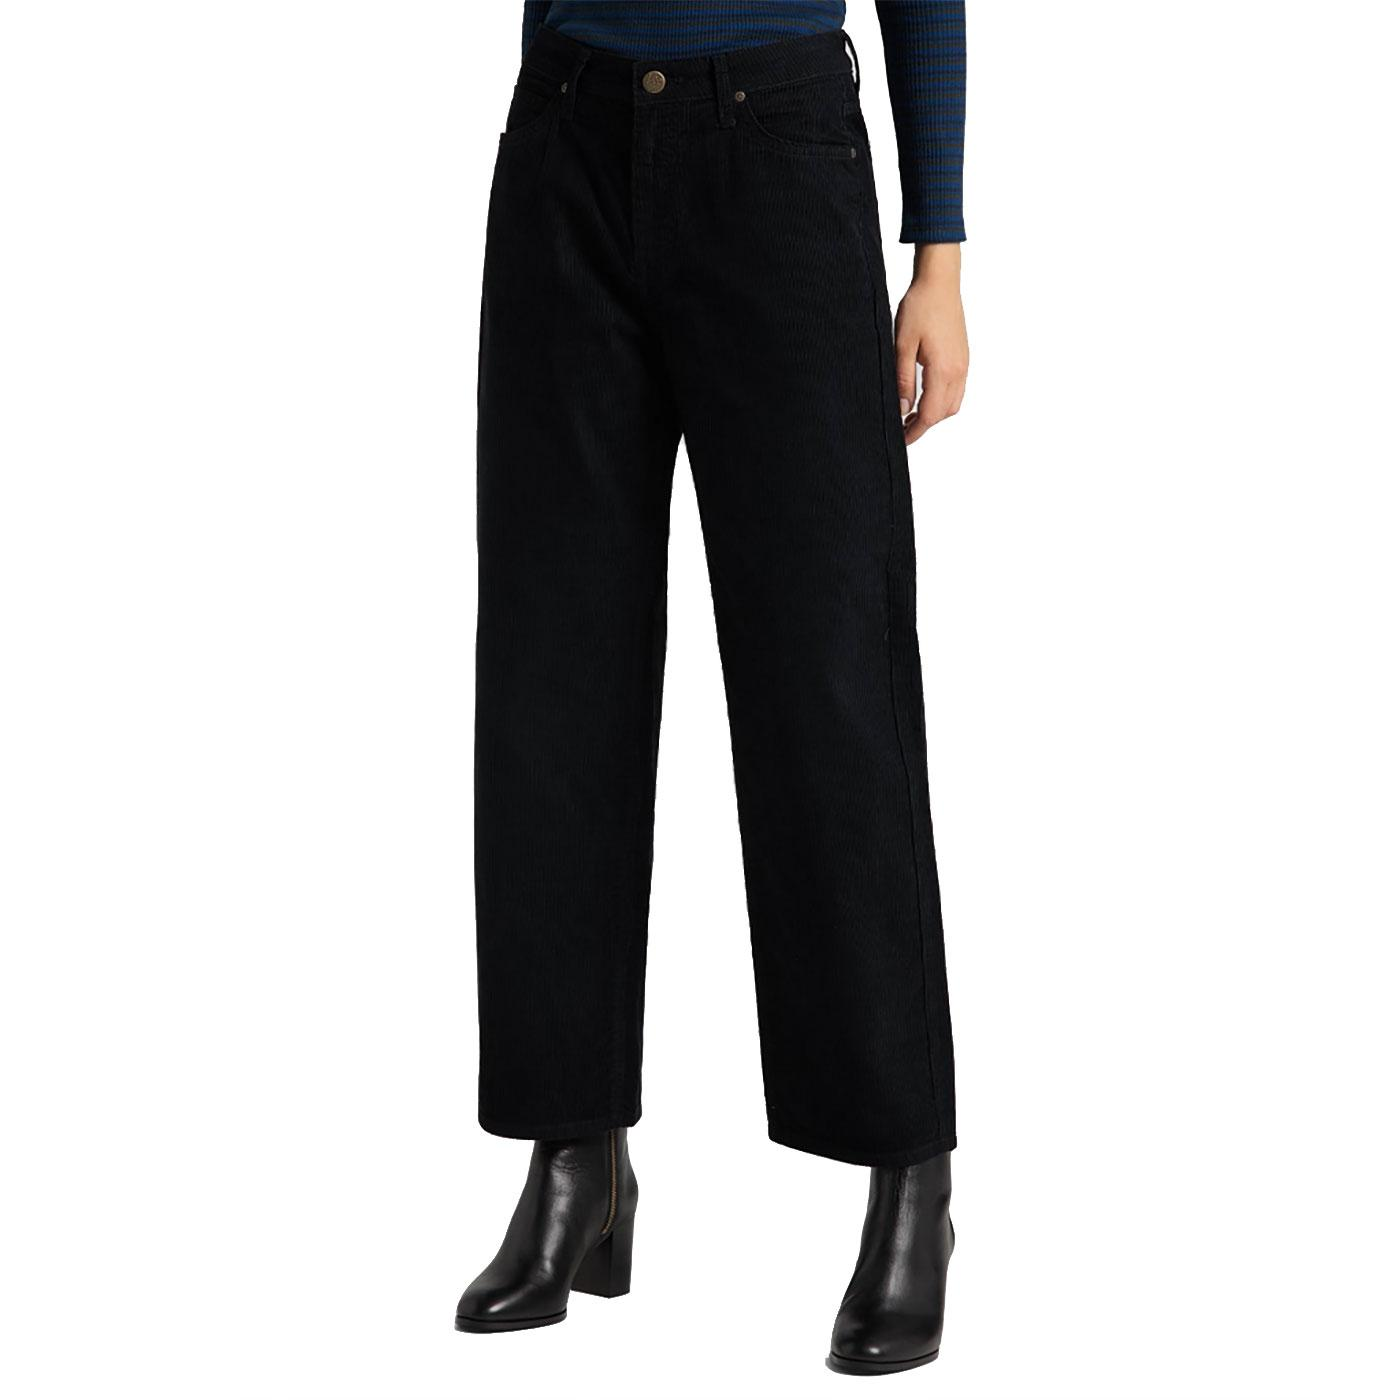 LEE Women's Retro Cropped Wide Leg Corduroy Jeans